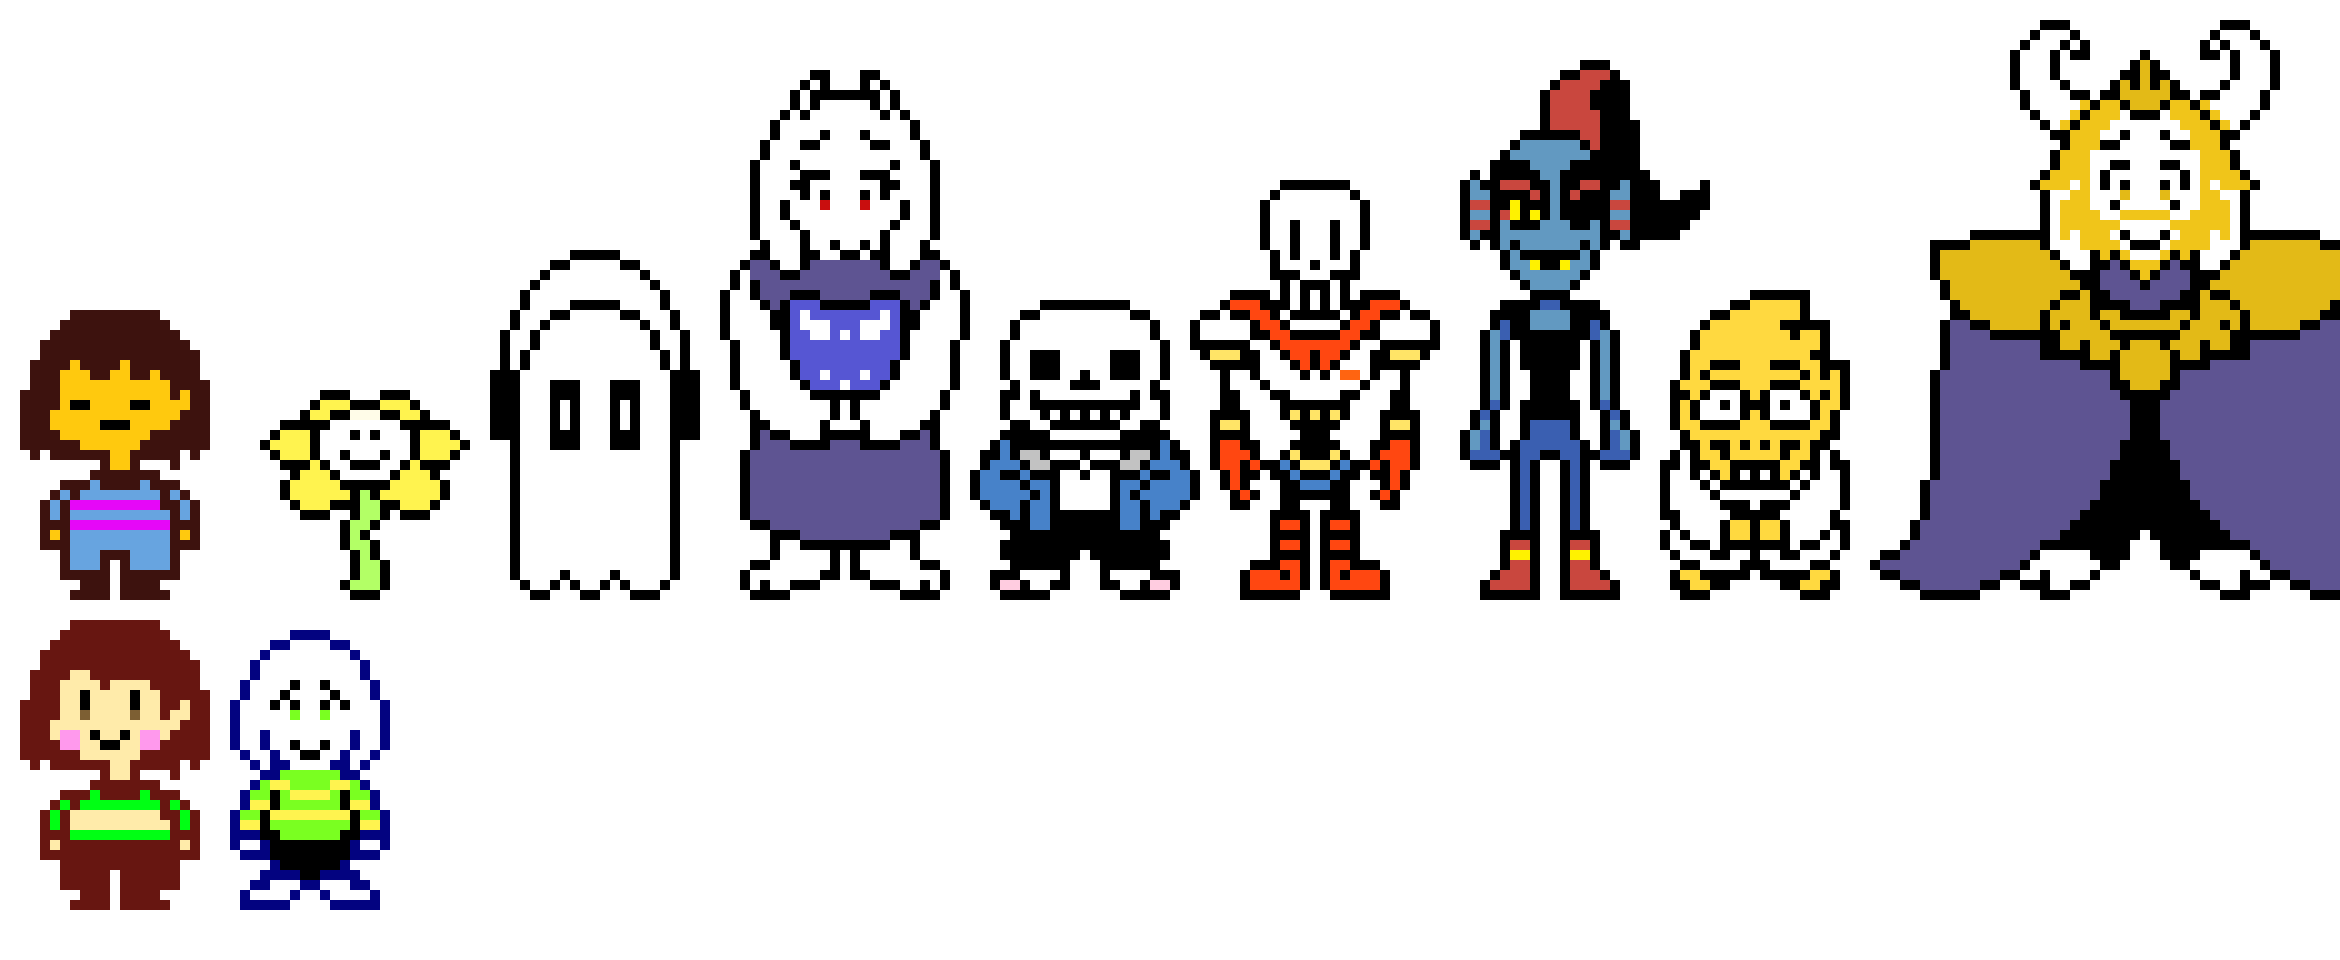 [1550b] UNDERTALE - (mostly) All Main Characters Cast Overworld Sprites